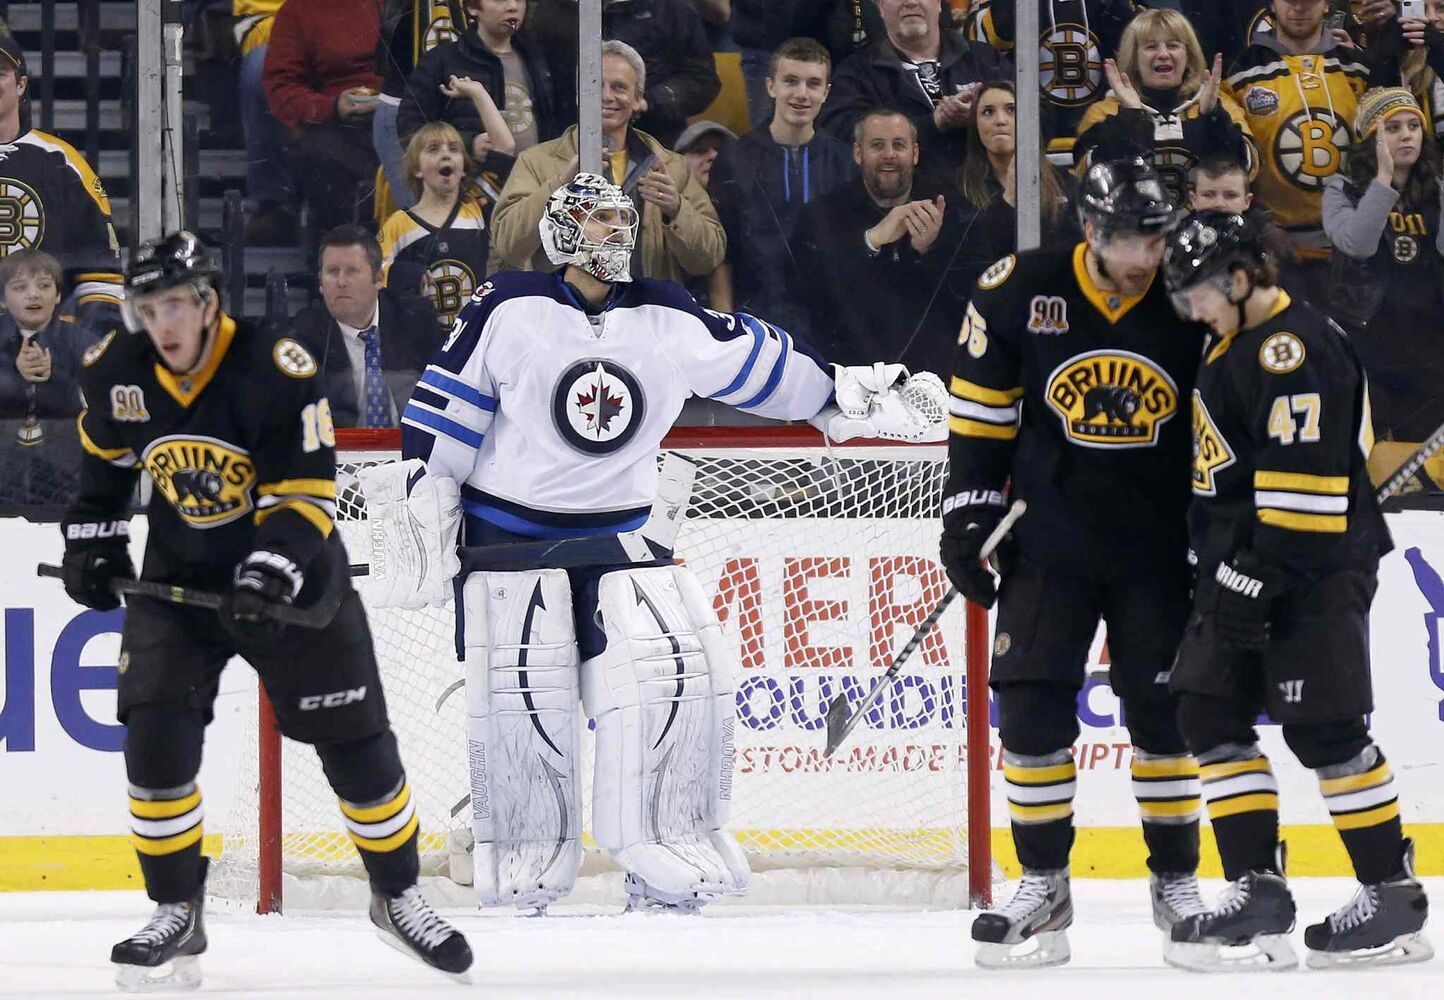 Winnipeg Jets' Ondrej Pavelec, centre, stands in the goal as Boston Bruins' Johnny Boychuk (55) and Torey Krug (47) celebrate a goal by teammate Reilly Smith, left, during third period in Boston Saturday.